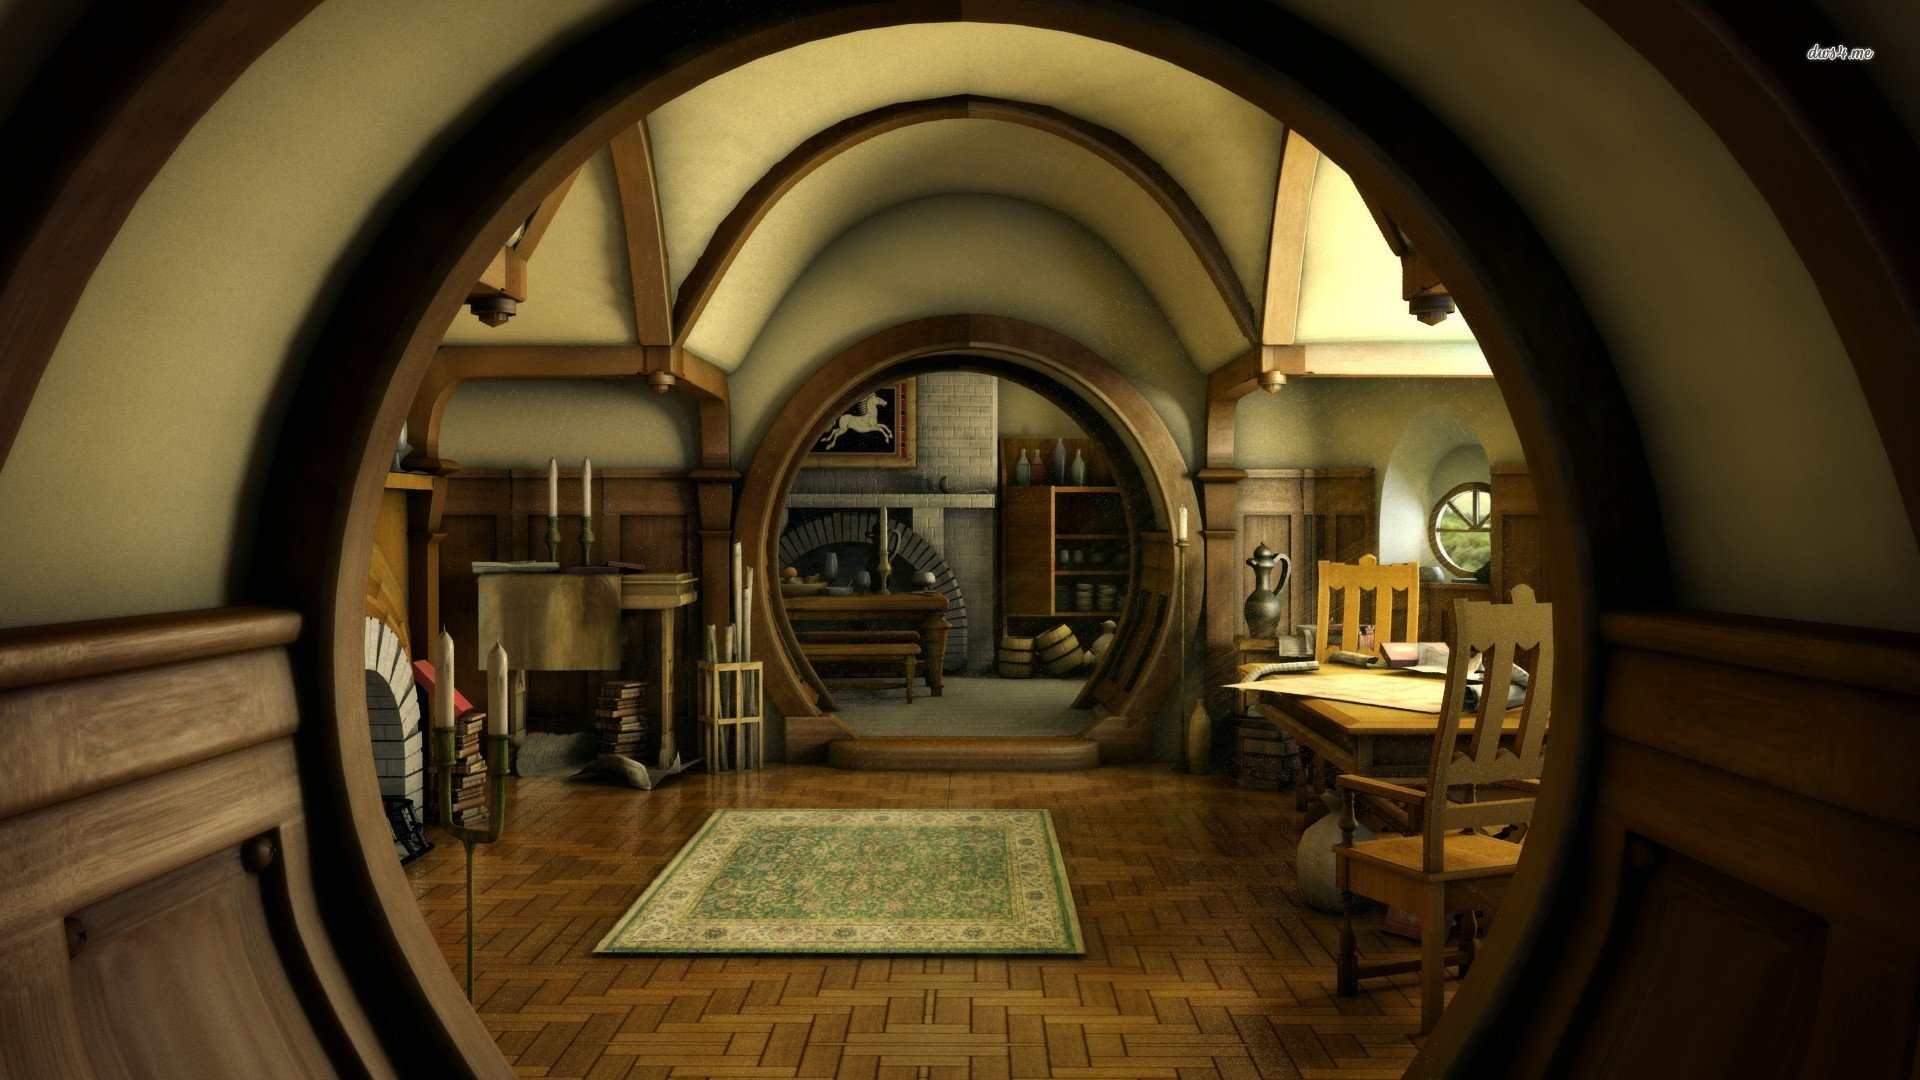 Hobbit house   The Hobbit wallpaper 1280x800 Hobbit house   The Hobbit 1920x1080